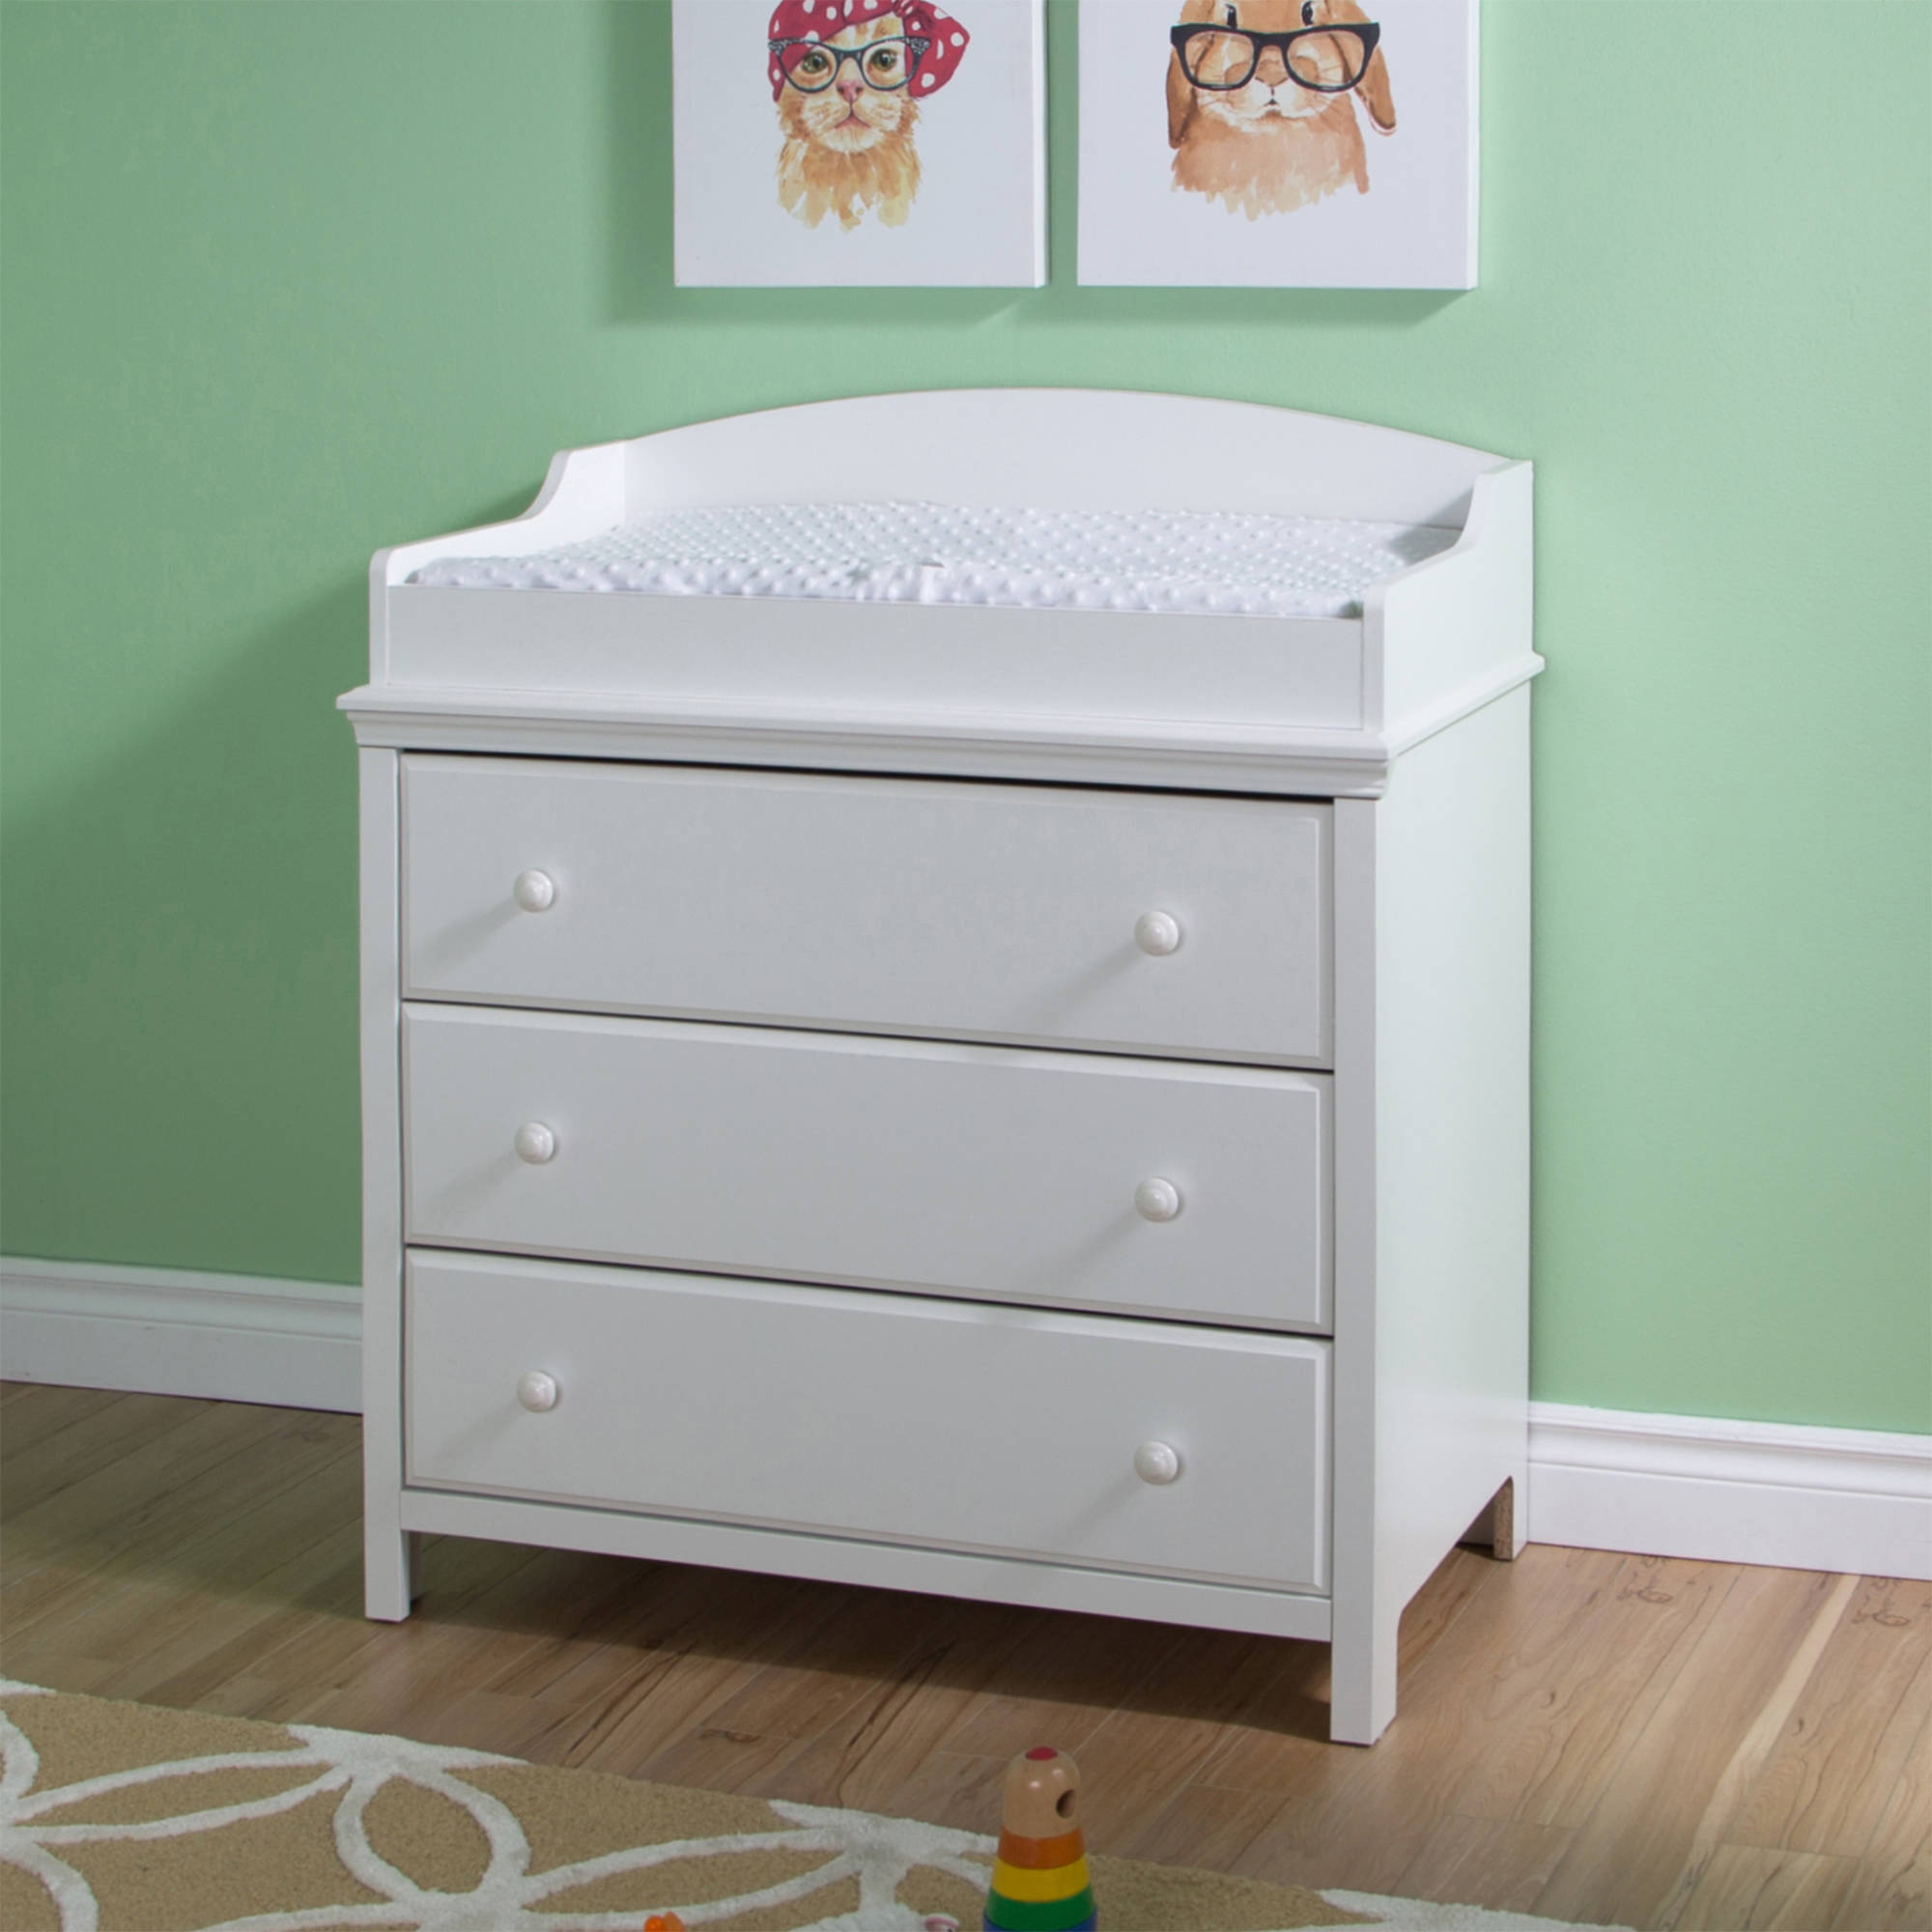 South Shore Cotton Candy Changing Table with Drawers, Multiple Finishes